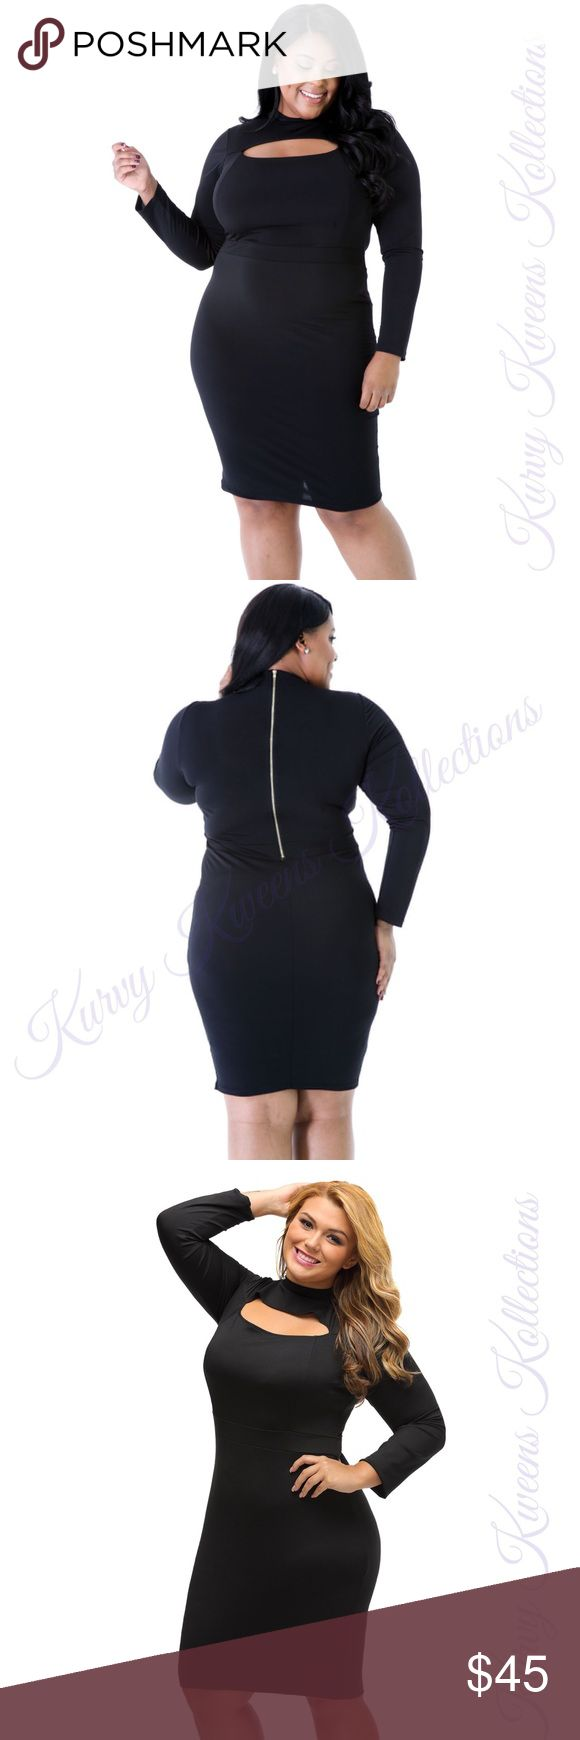 Keyhole Bodycon Dress This long sleeve bodycon dress will hug your curves in a direct way and make you look sexy while covered.  This dress features : *mock neckline *keyhole cutout design  *curve-hugging *exposed back-zip closure *long sleeve Dresses